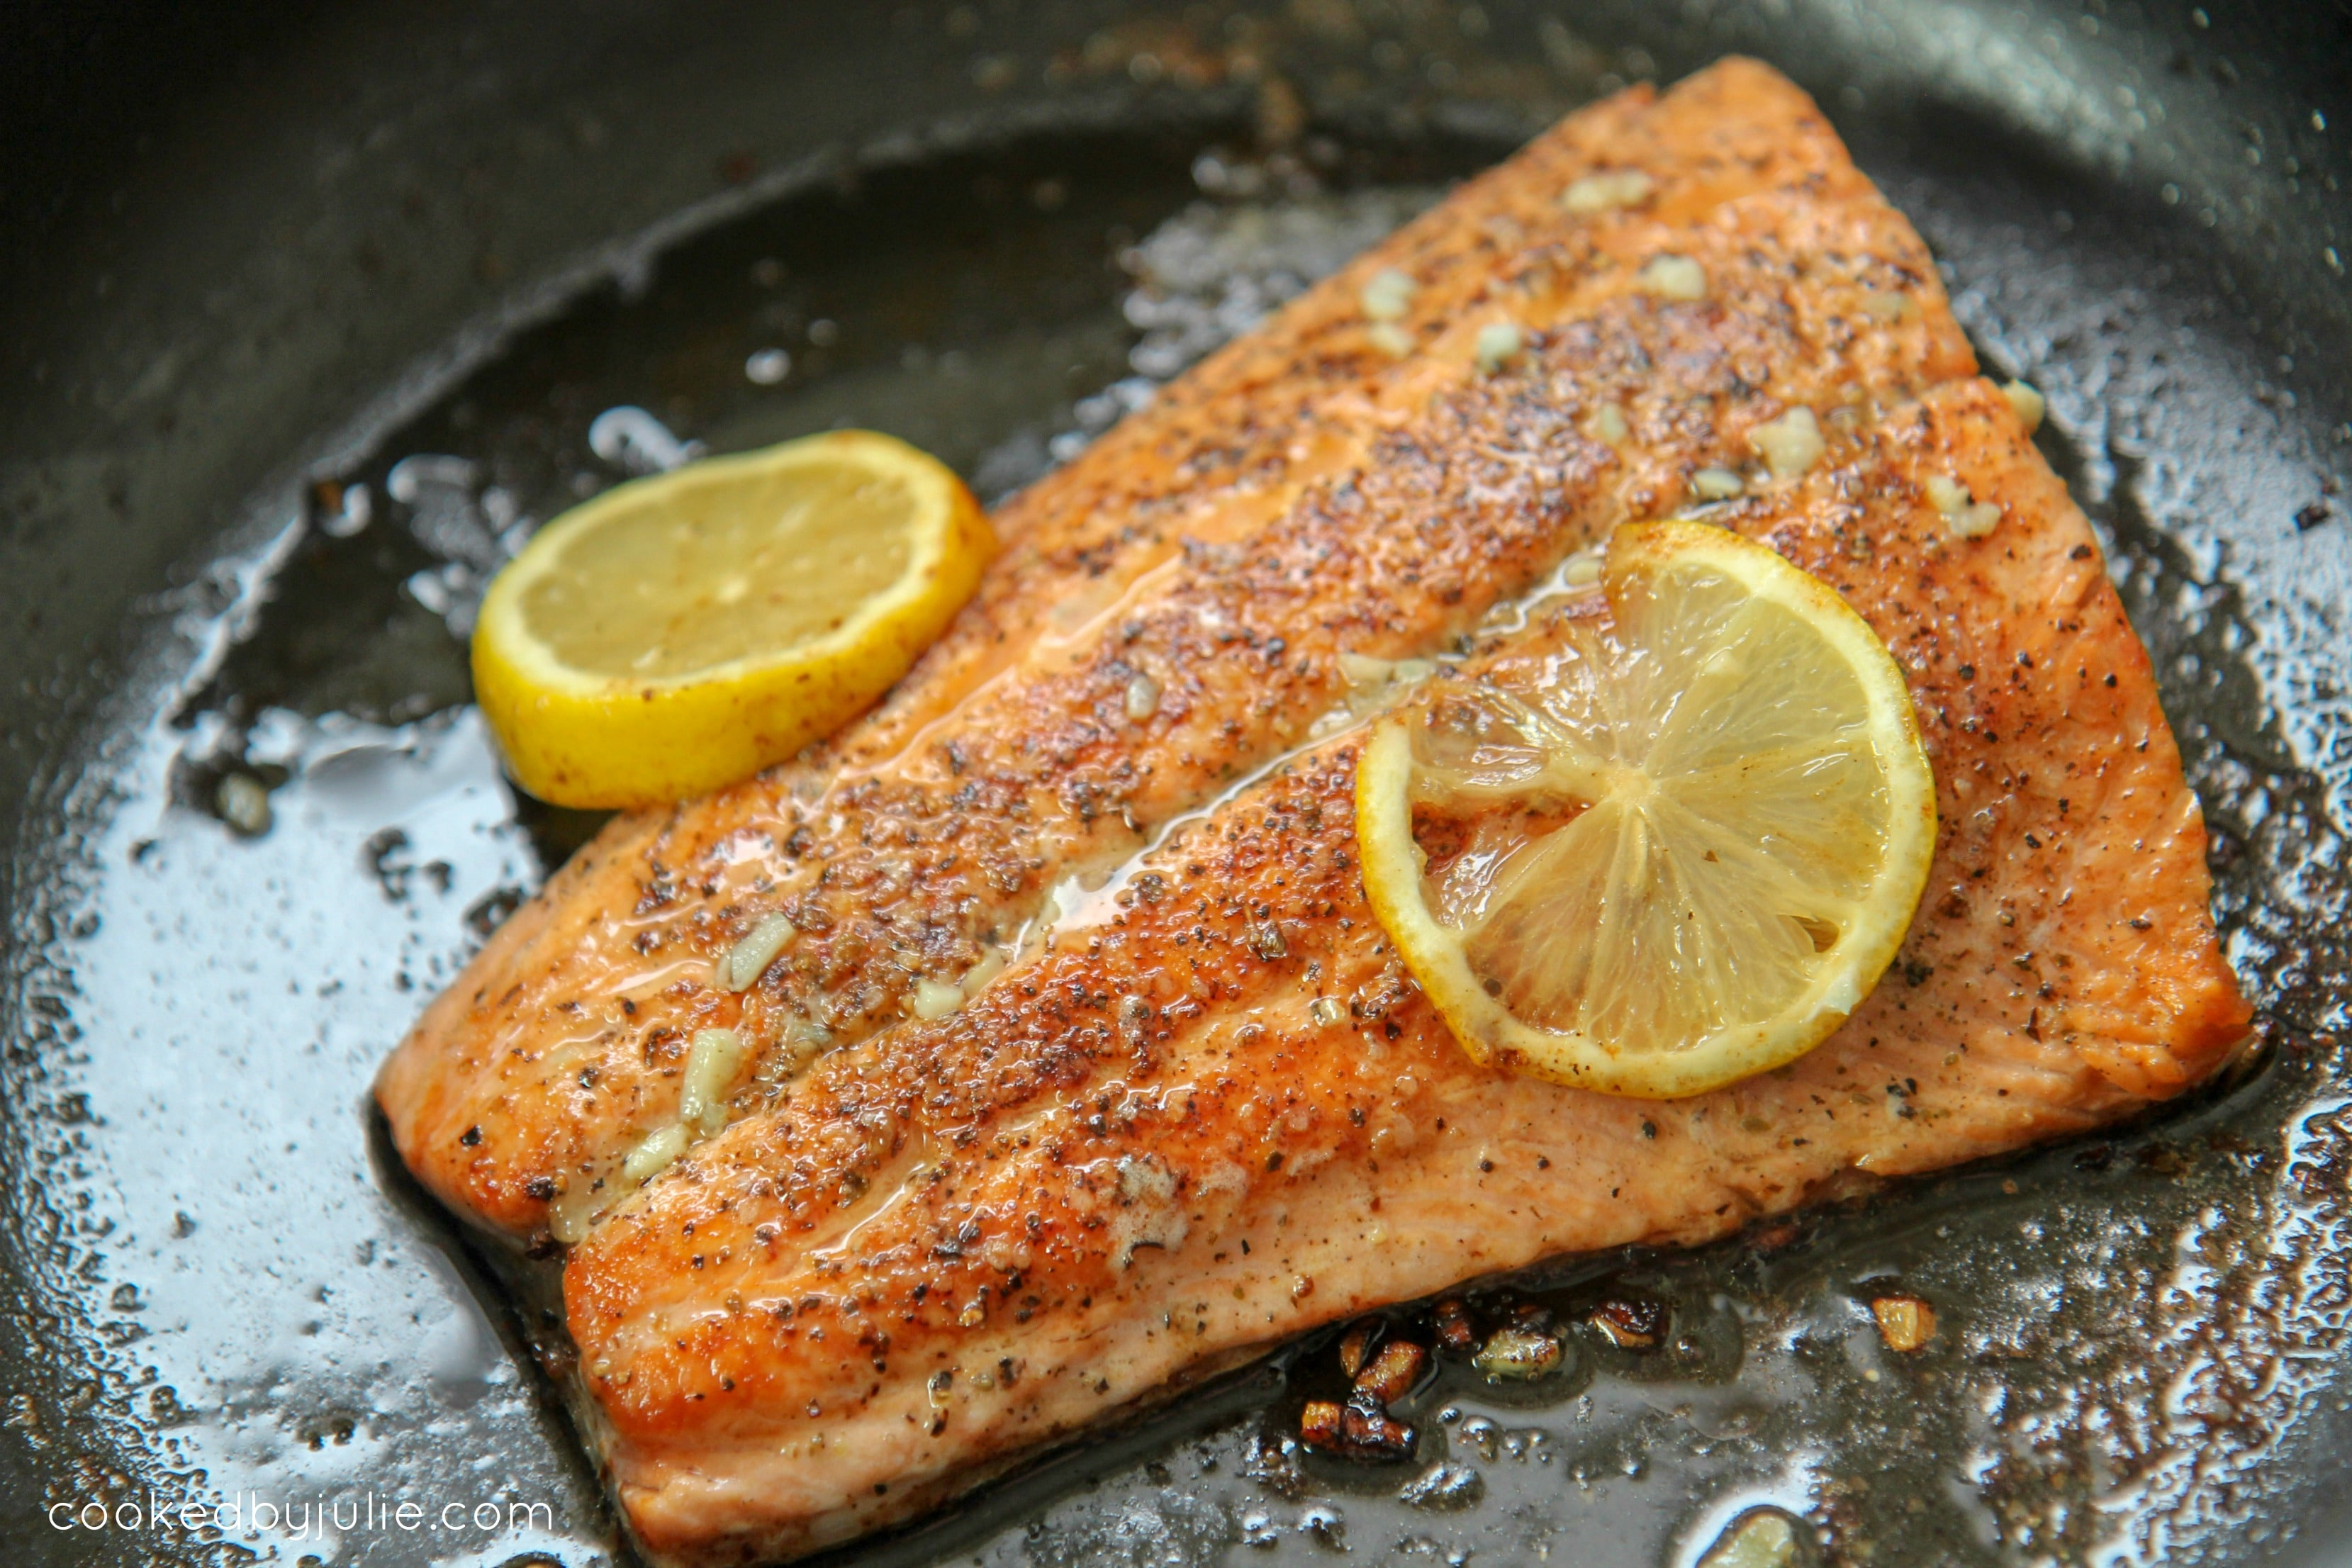 salmon filet in a large skillet with lemon slices